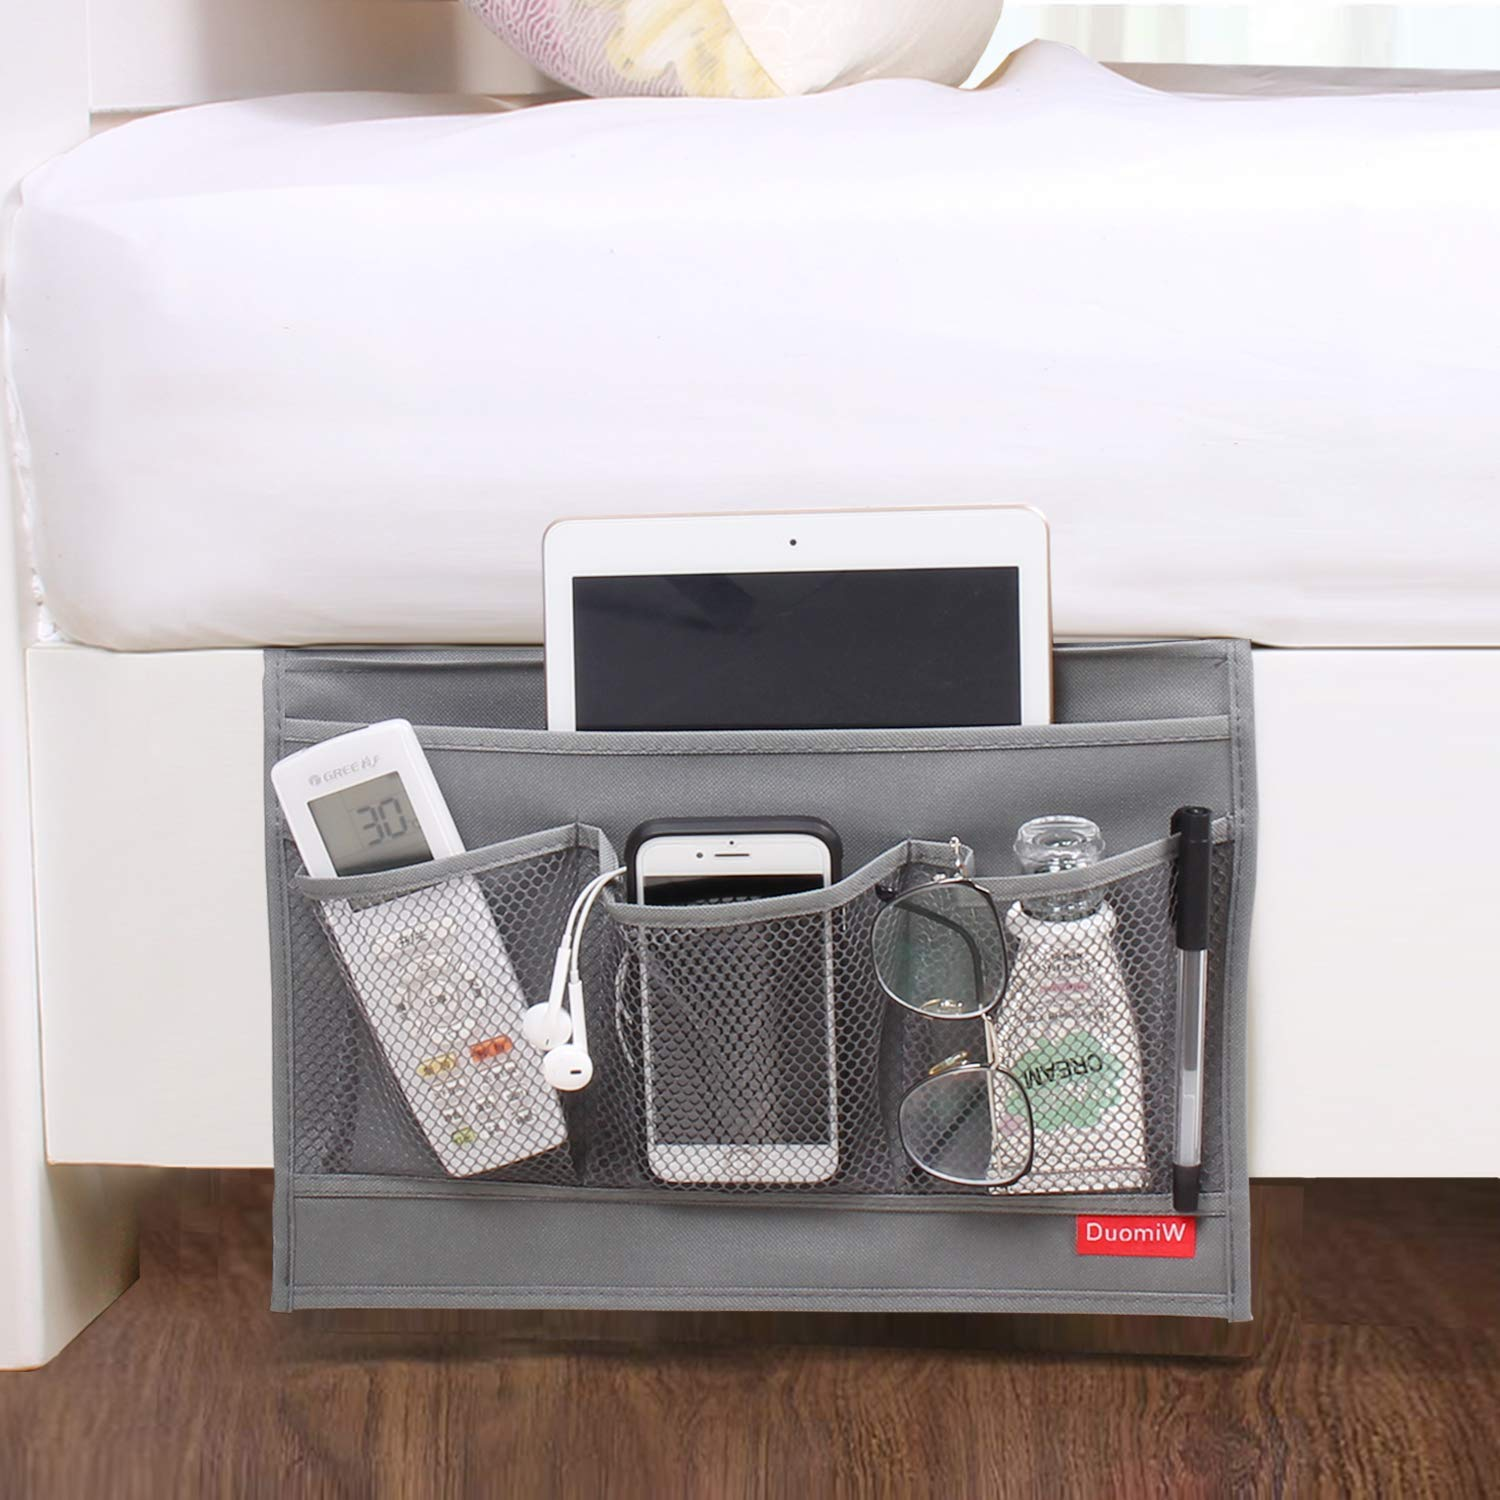 DuomiW Bedside Organizer Magazines Accessories